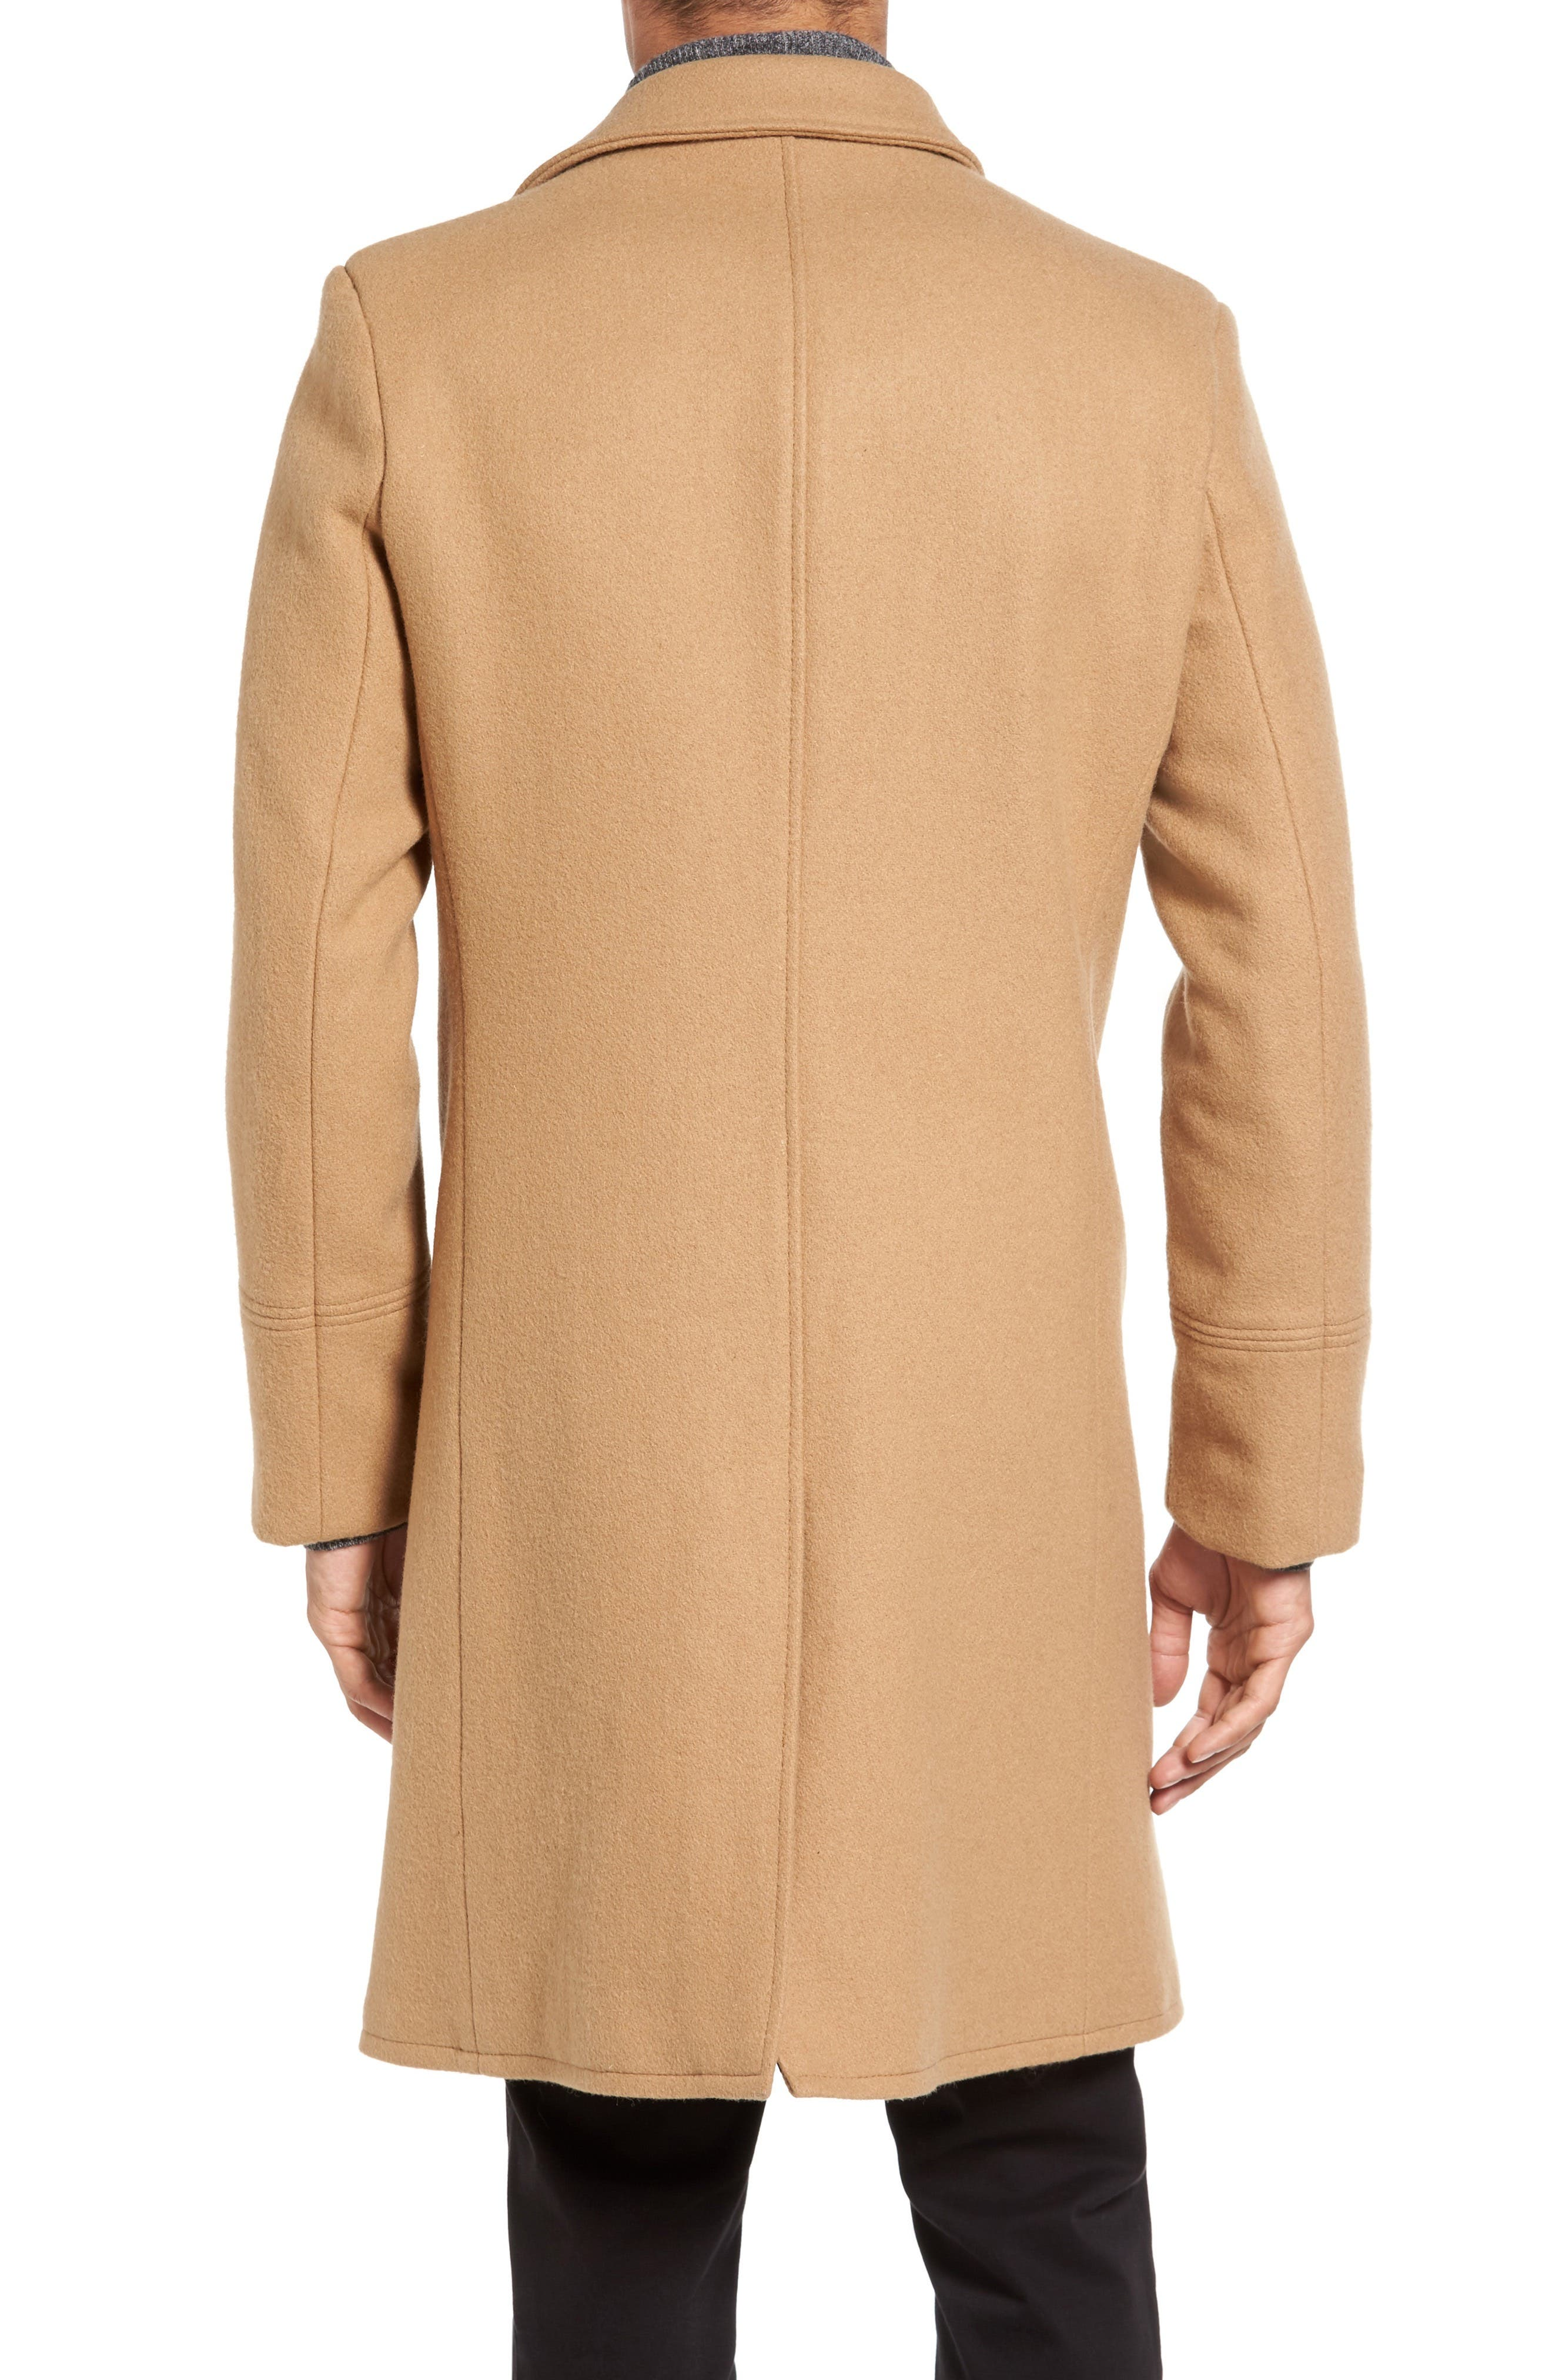 SCHOTT NYC, Wool Blend Officer's Coat, Alternate thumbnail 2, color, 200